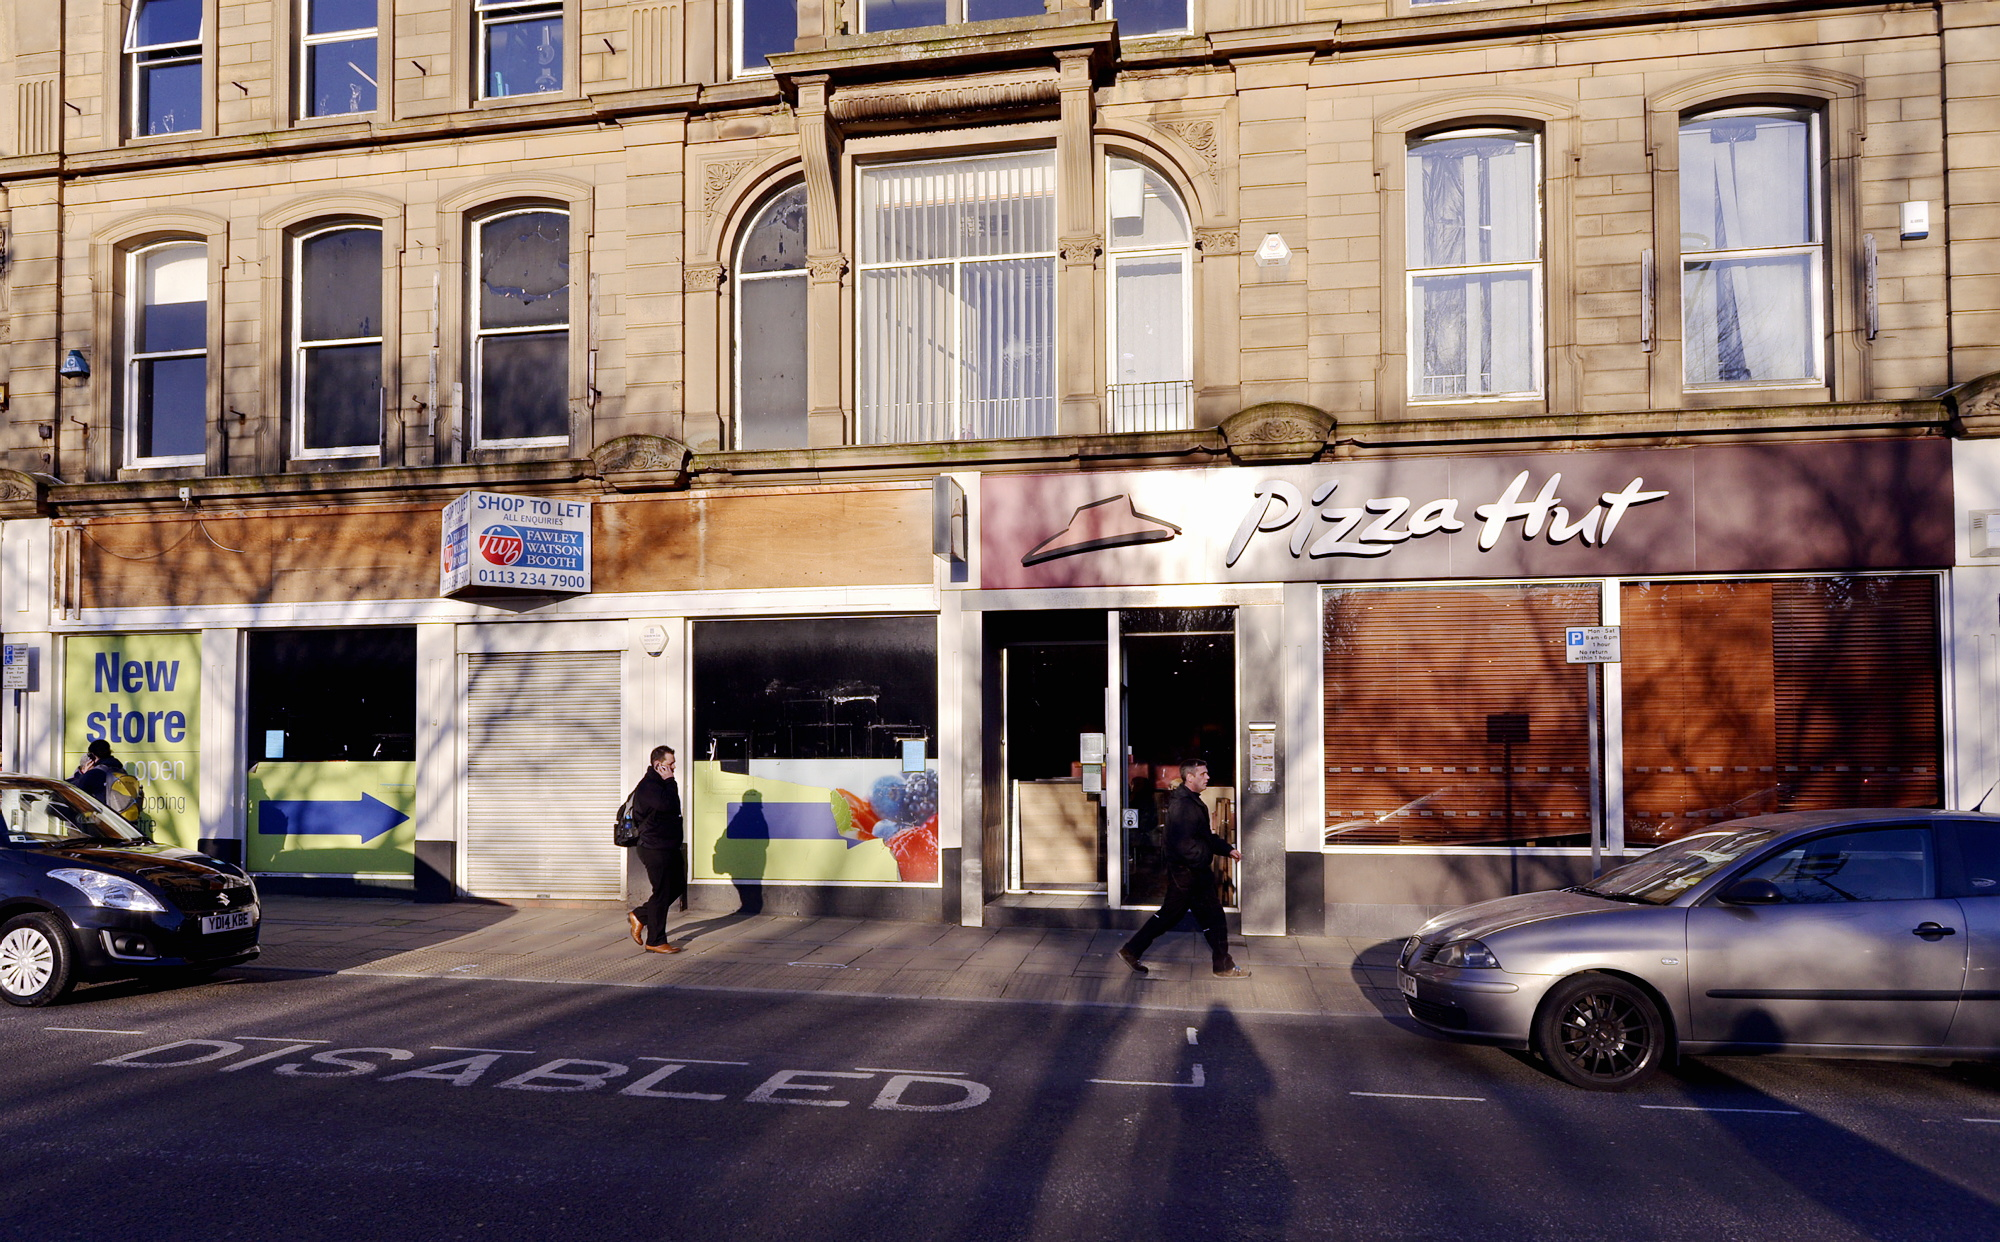 Sainsbury's wants to create a Bingley store in the former Co-op, extending into the Pizza Hut premises